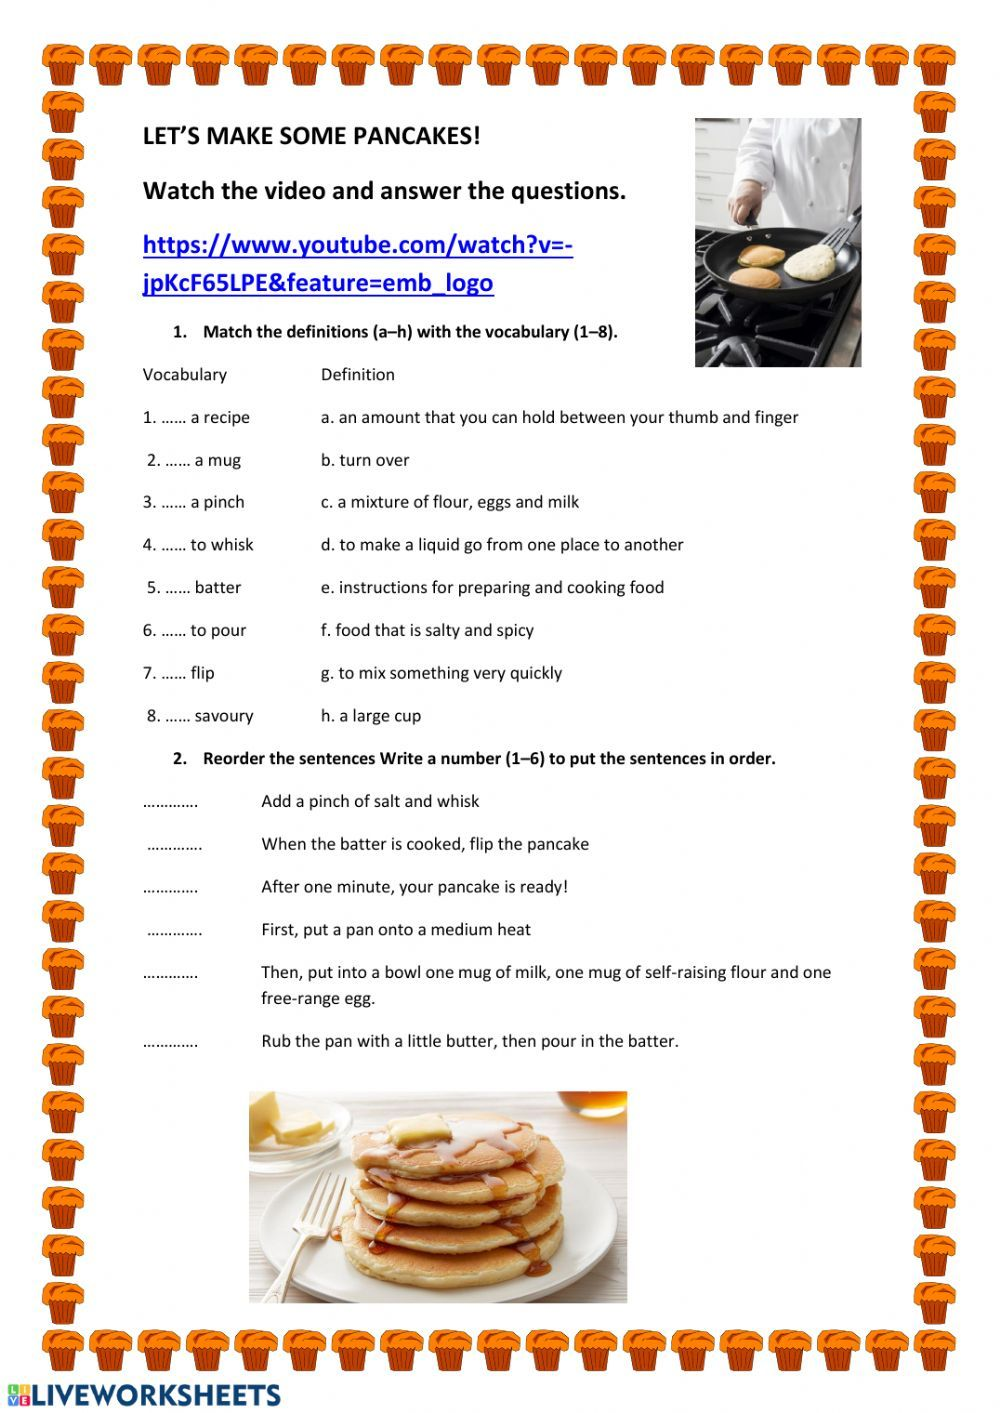 Cooking Vocabulary Interactive And Downloadable Worksheet You Can Do The Exercises Online Or Download The Worksh Easy Sandwich Recipes Recipes Cooking Recipes [ 1413 x 1000 Pixel ]